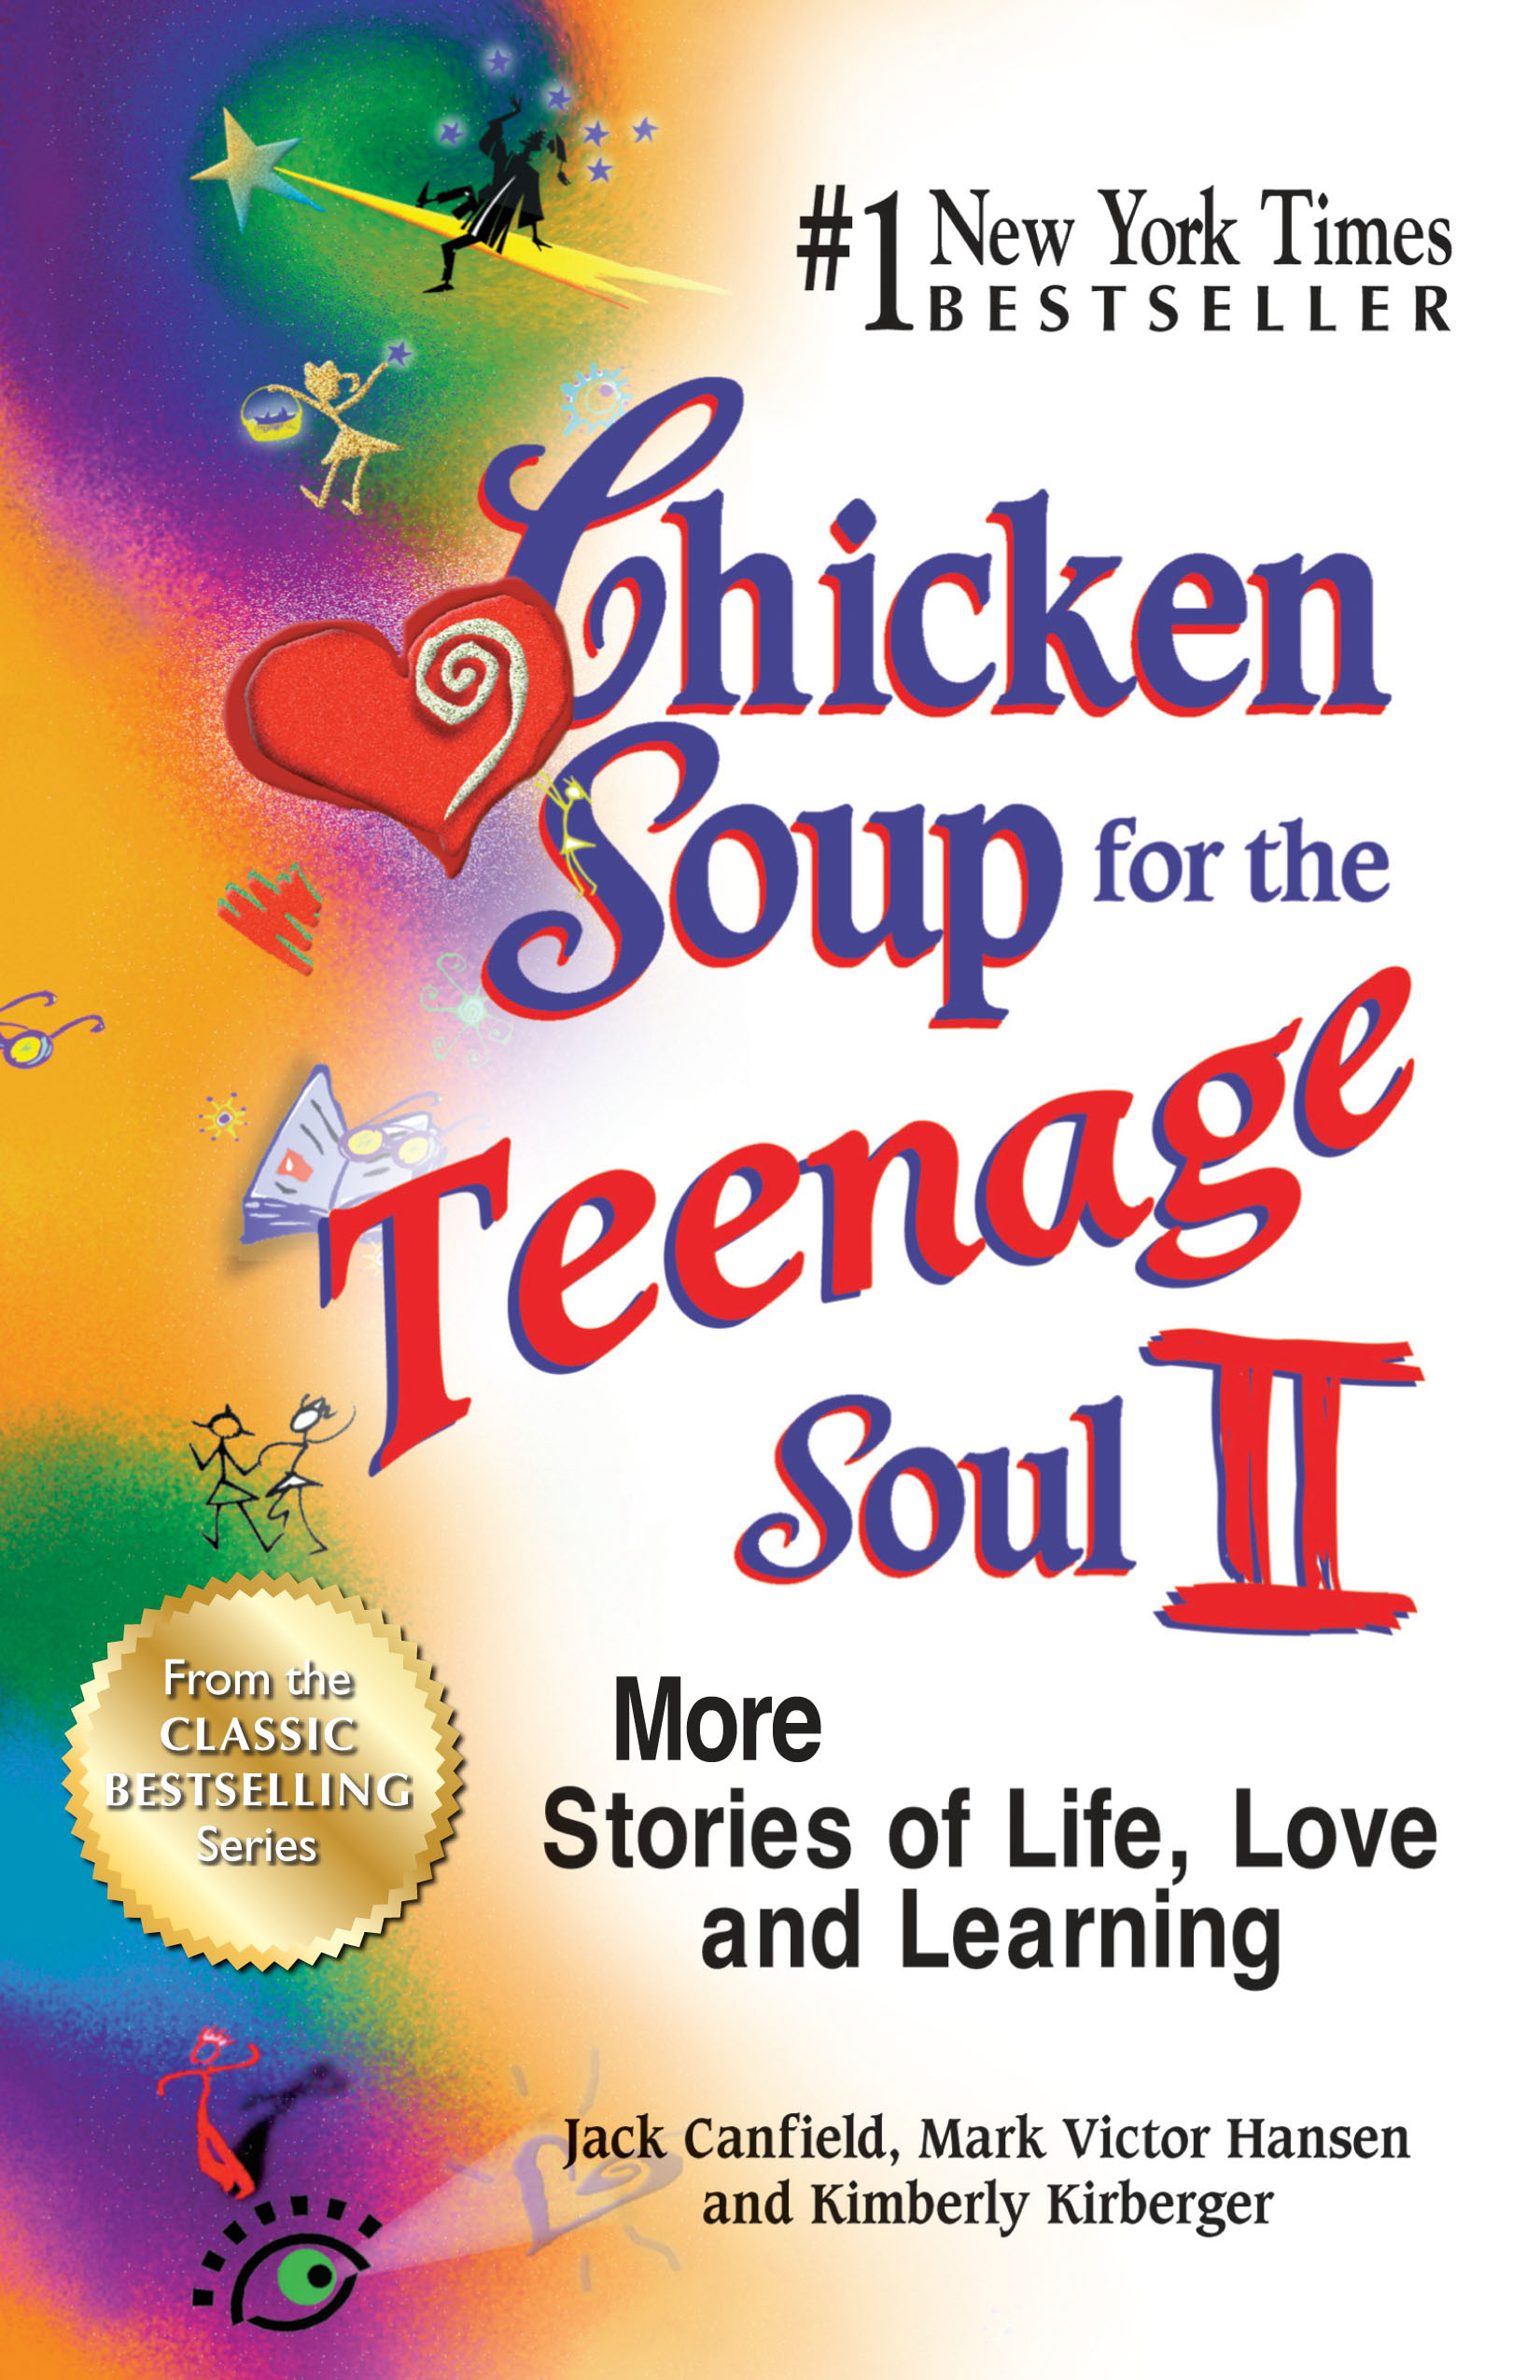 Chicken Soup For The Teenage Soul  Chicken Soup for the Teenage Soul II